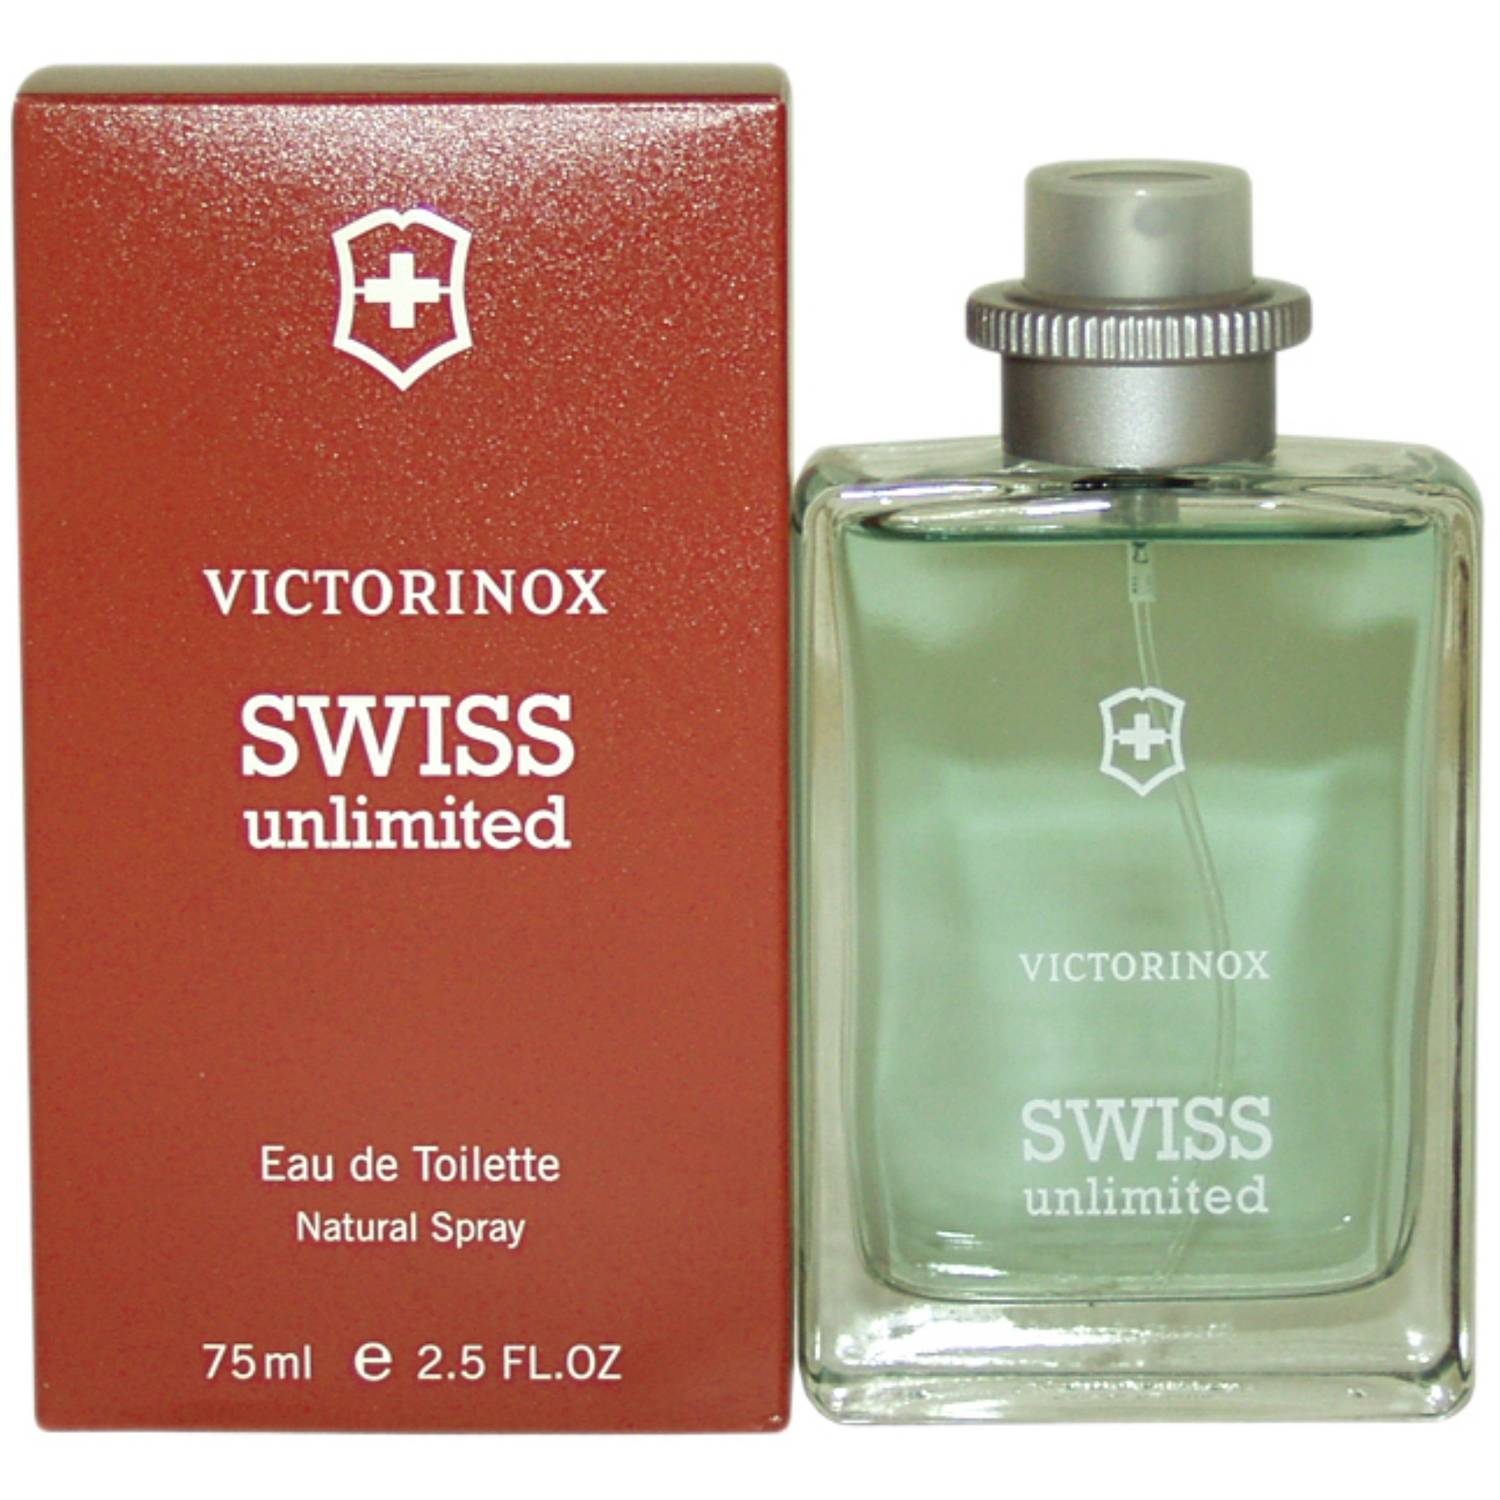 Swiss Army Victorinox Unlimited Men's EDT Spray, 2.5 fl oz